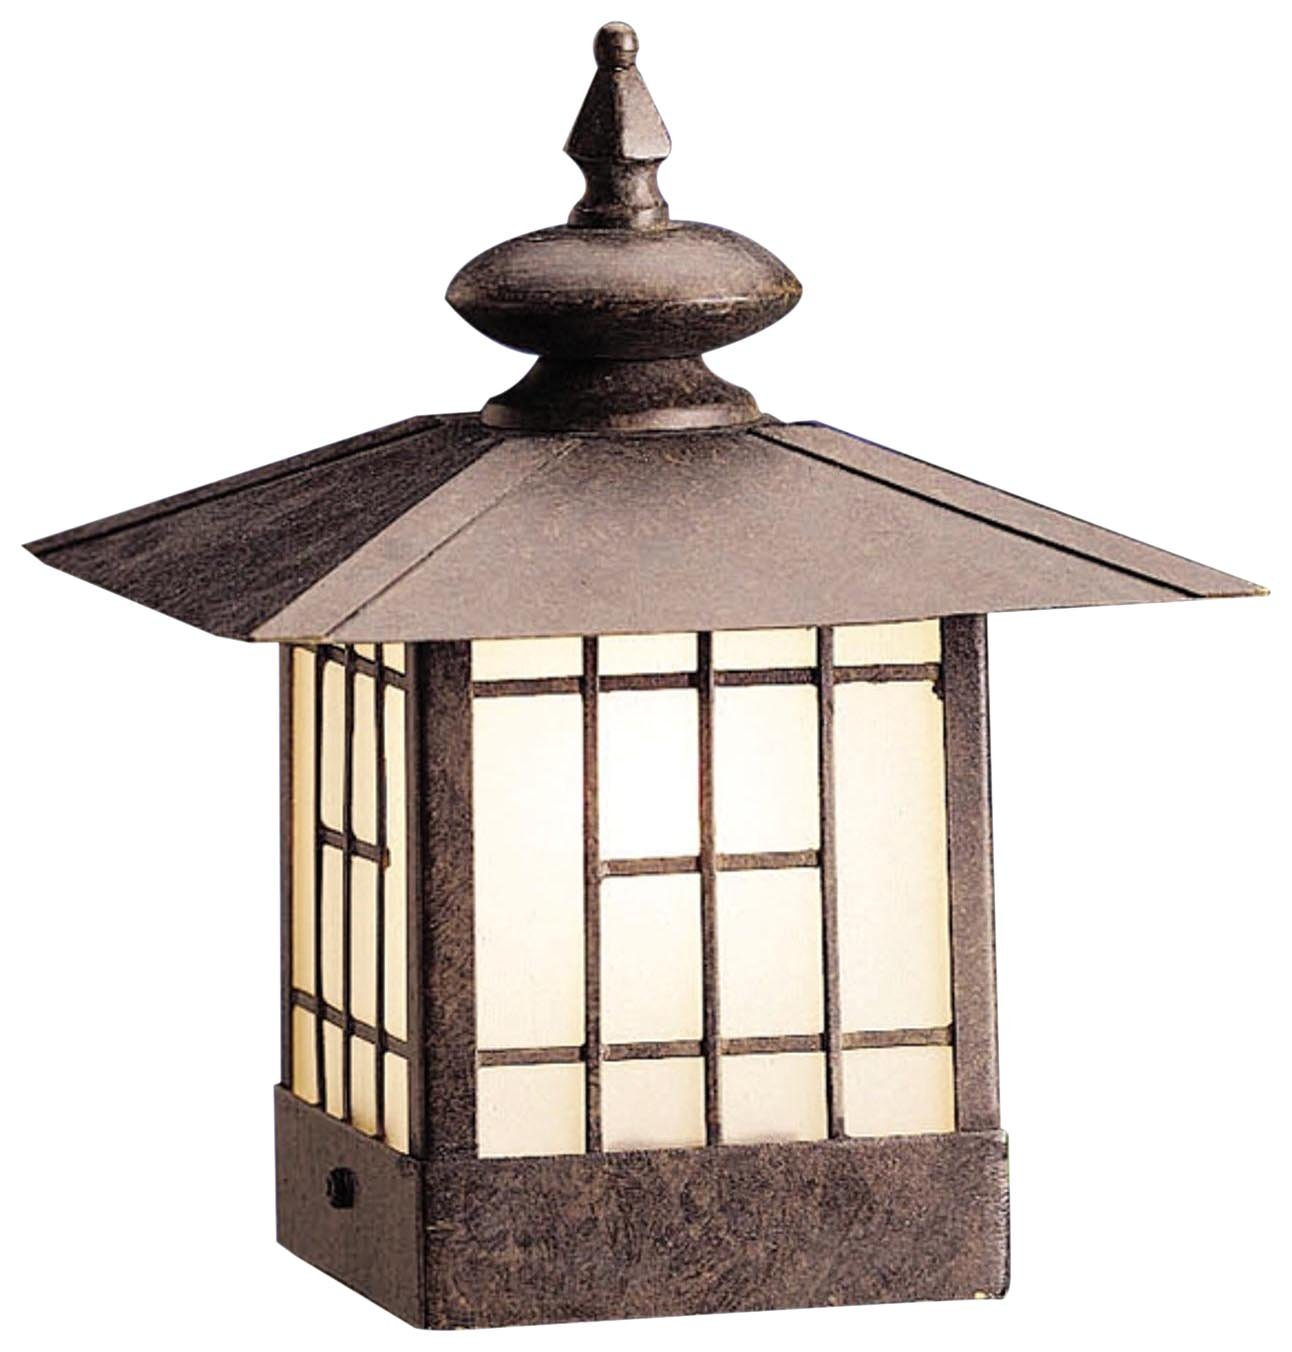 Kichler Lighting 15048PZ Mission Post Light 12-Volt Deck and Patio Light, Patina Bronze with Satin-Etched Glass